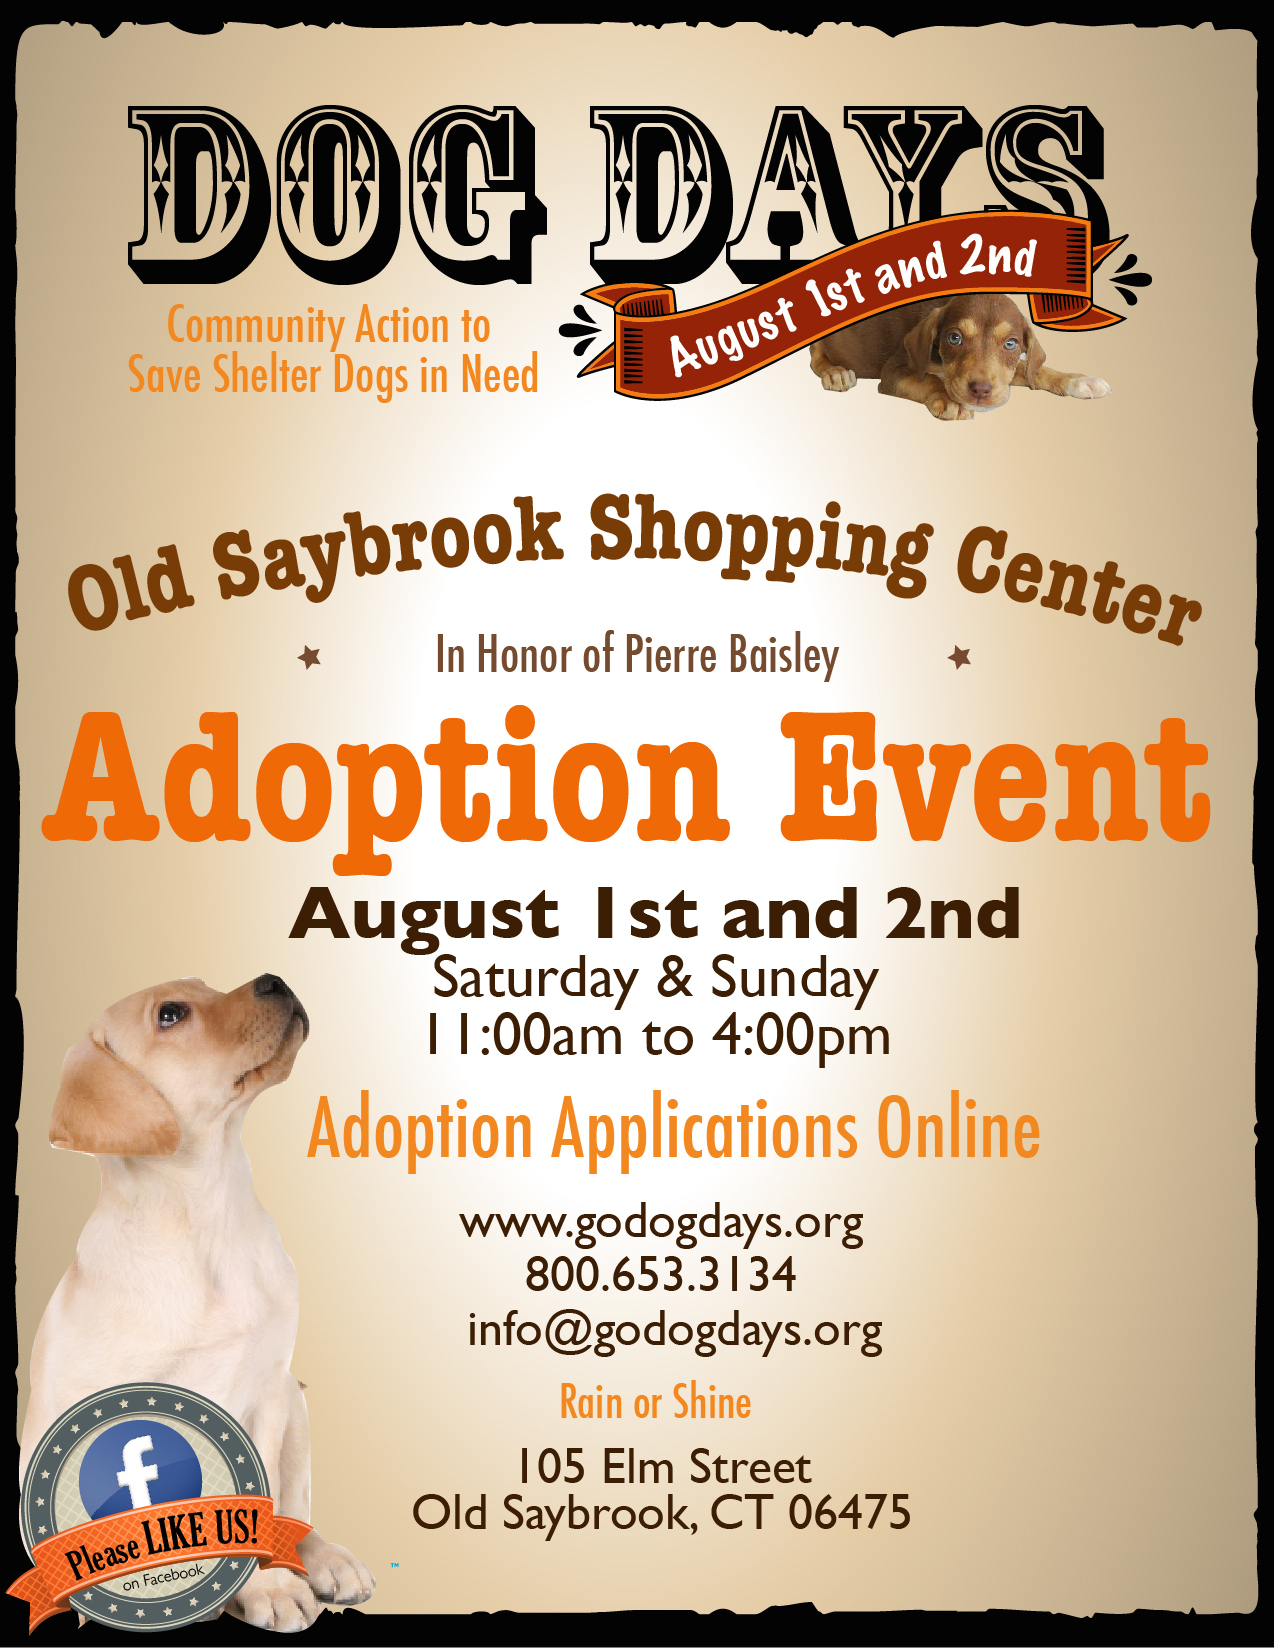 DOG DAYS ADOPTION EVENT – OLD SAYBROOK